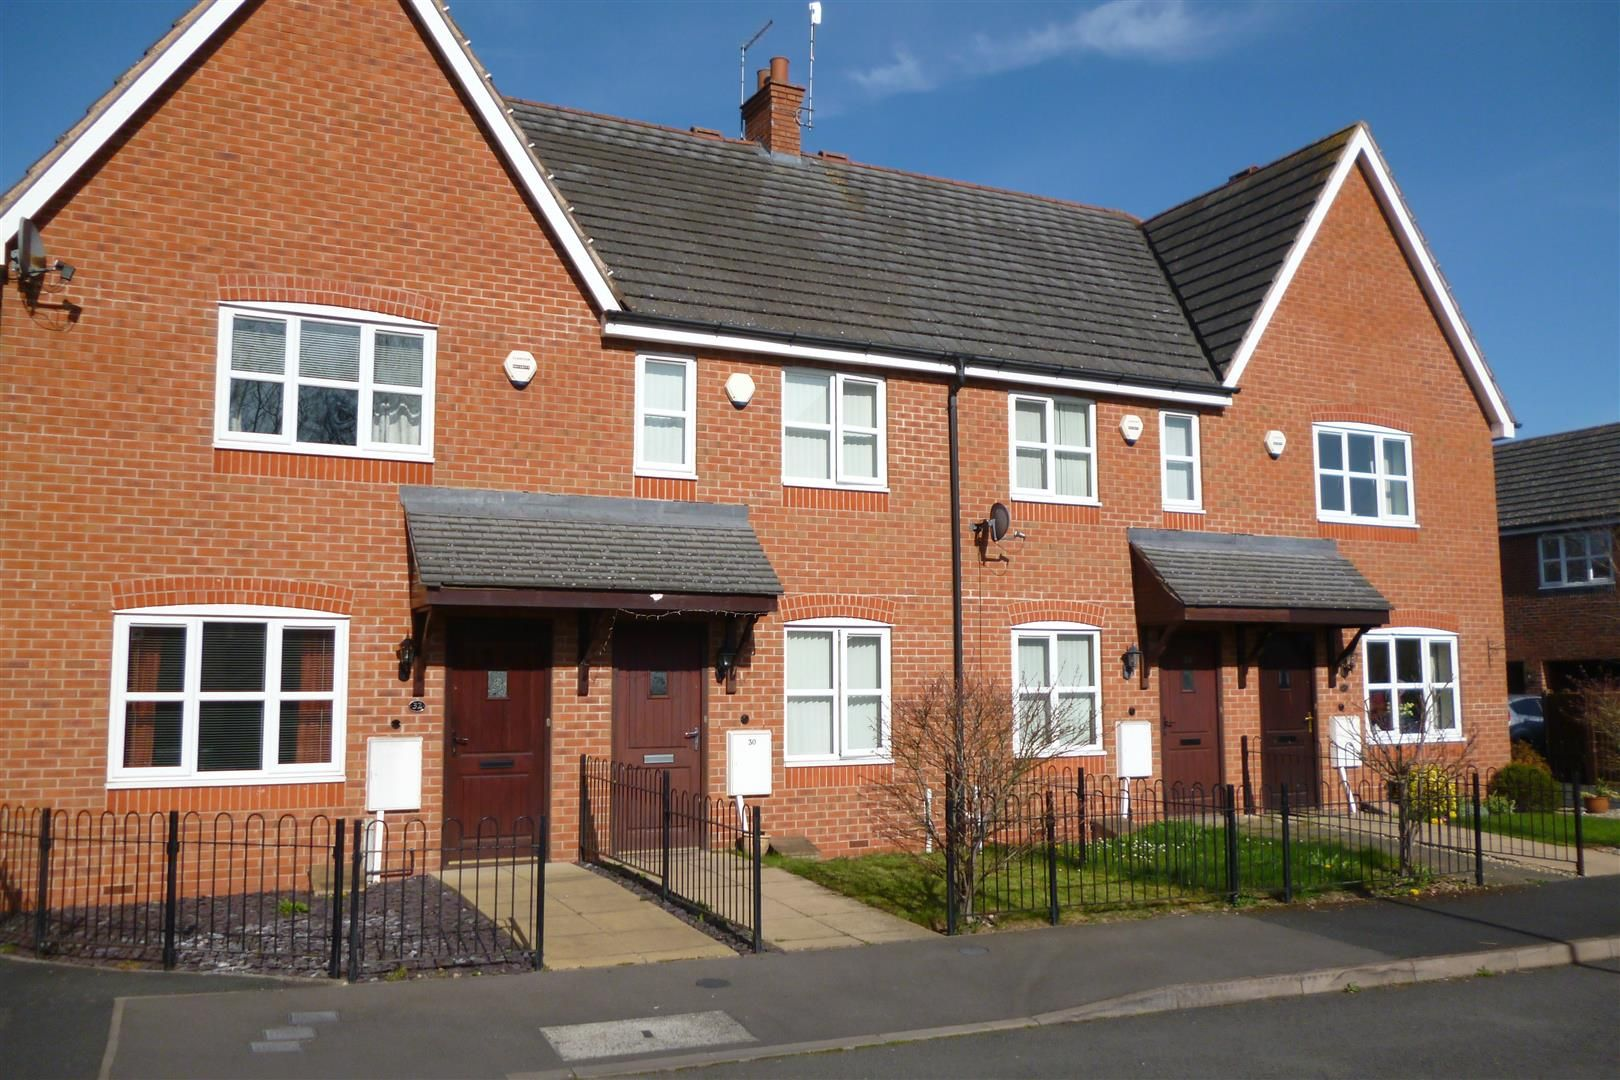 2 bed terraced for sale, WR9